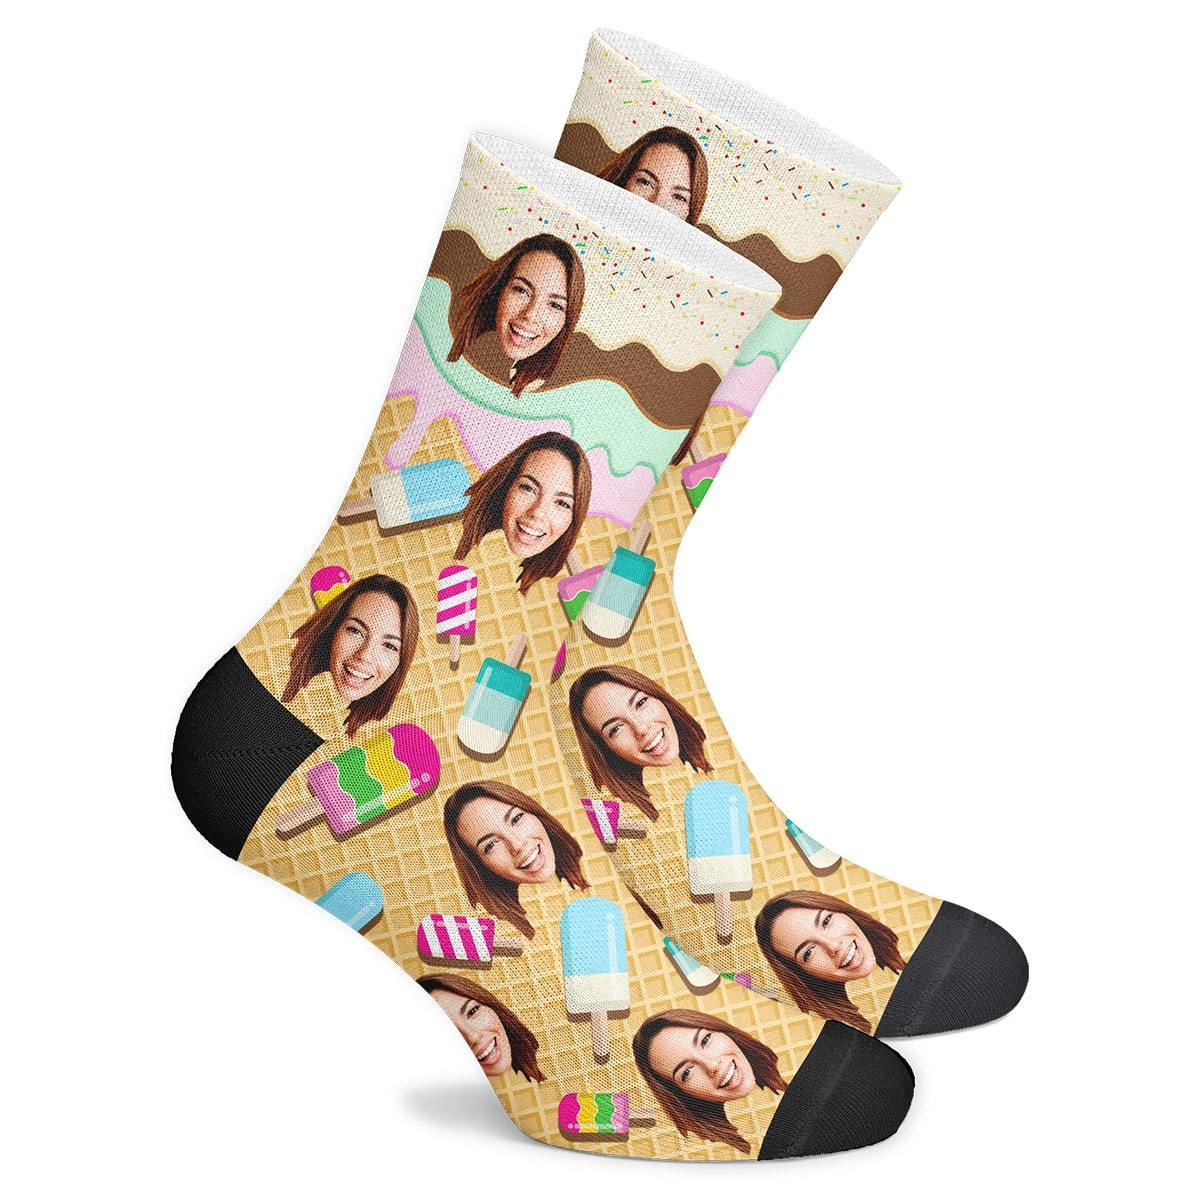 Customized Icecream Socks